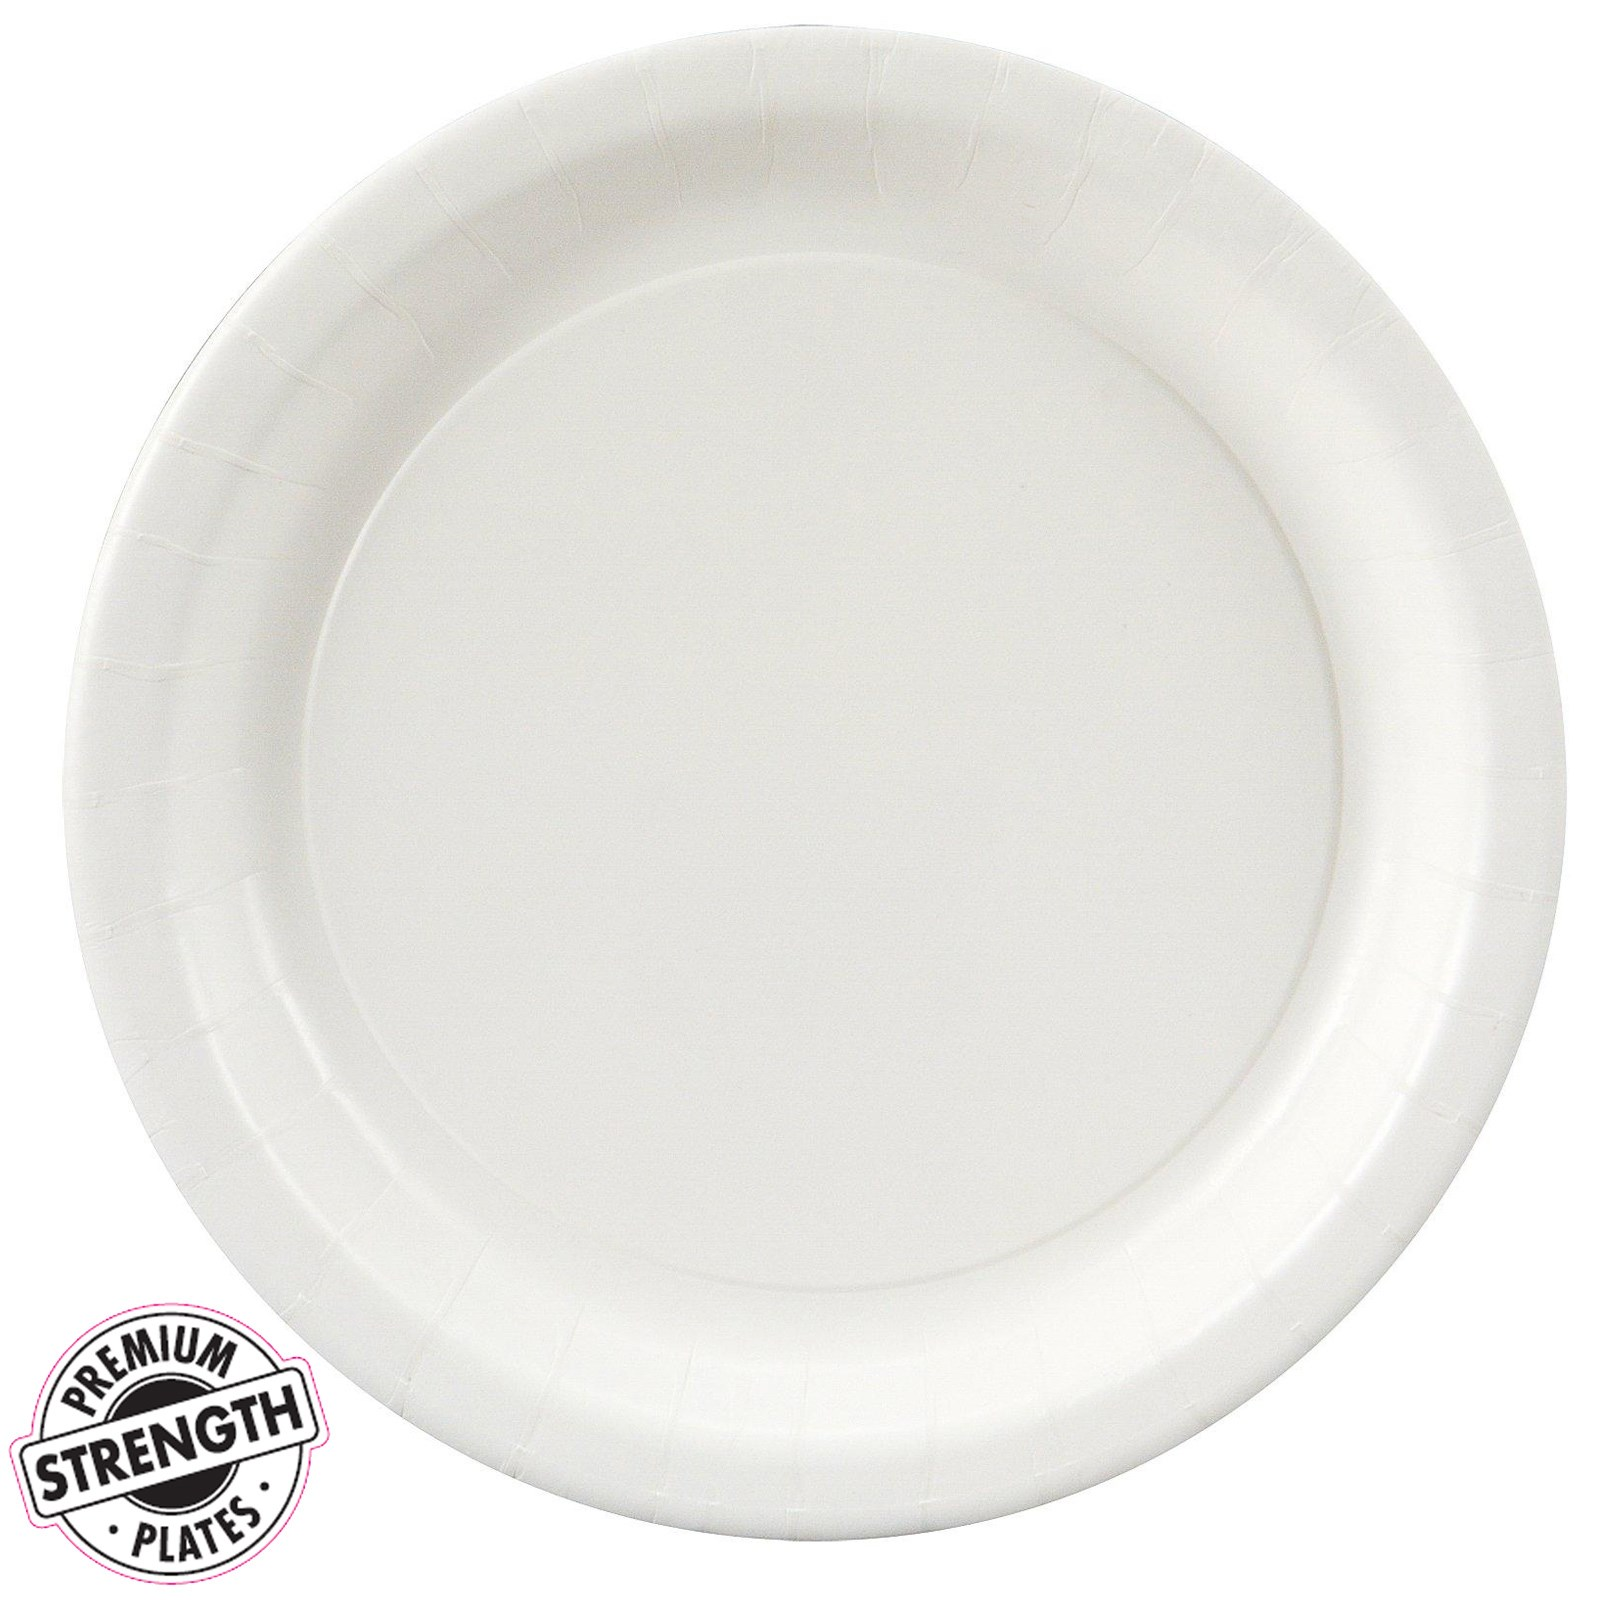 bright white white dessert plates 24 count. Black Bedroom Furniture Sets. Home Design Ideas